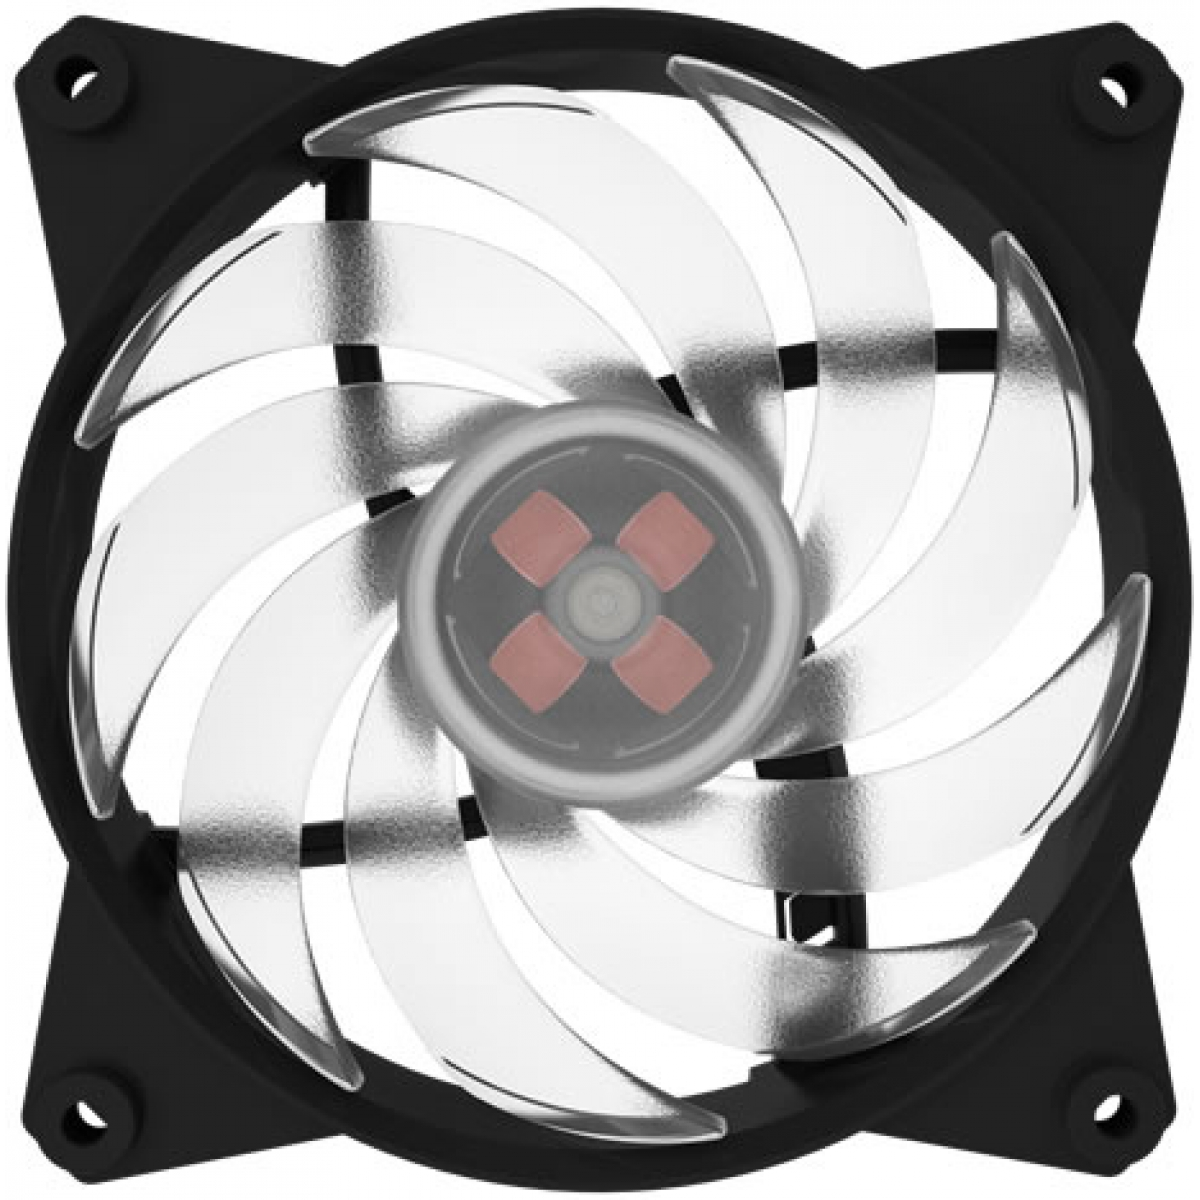 Kit Fan com 3 Unidades Cooler Master Masterfan PRO 120, RGB 120mm, MFY-B2DC-133PC-R1